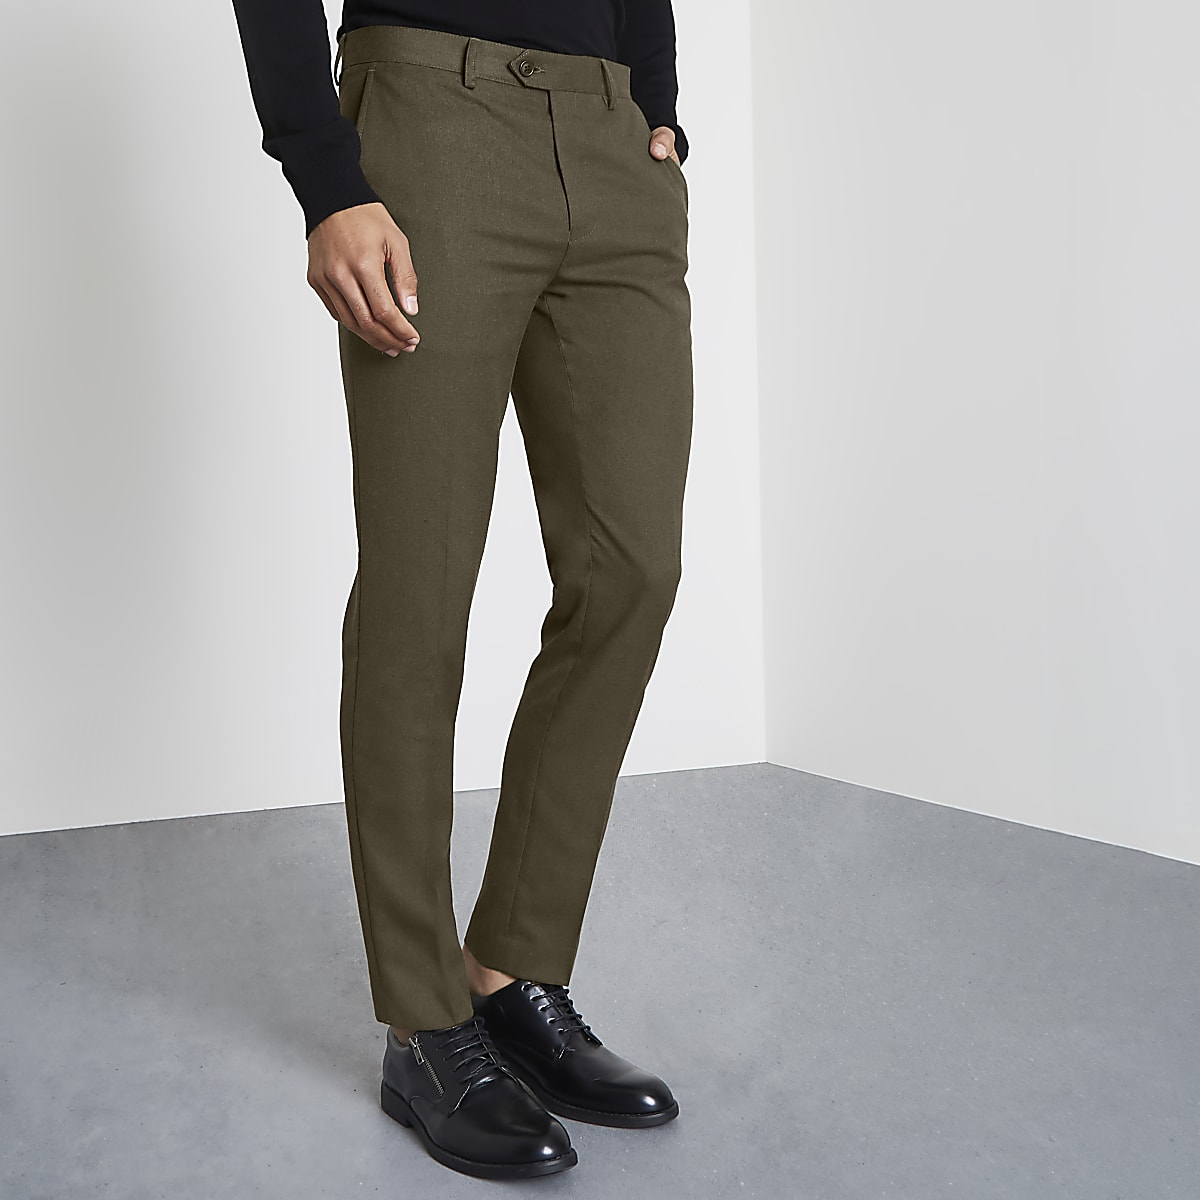 Khaki green smart skinny fit trousers